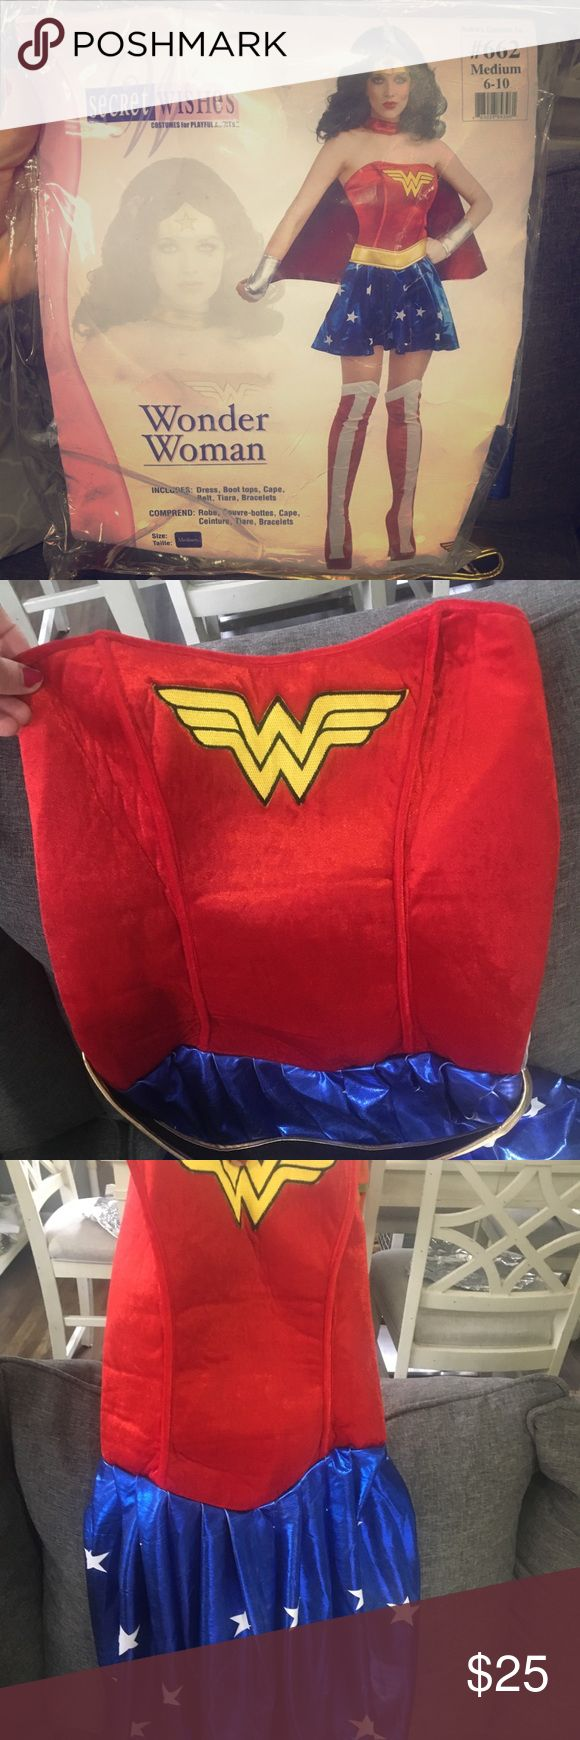 Wonder Woman Costume Get it now on sale before next Halloween! In great shape! Only worn twice and stayed at home both Halloweens so I was never out and about with it.   Comes with the dress, cape, boot covers, belt, wrist cuffs & headband.   Originally $50 at party city. Medium 6-10 .   Slight silver coloring on blue star skirt/ red cape— probably from washing it... never put it in the dryer. Barely noticeable, but I included an image for reference. Other